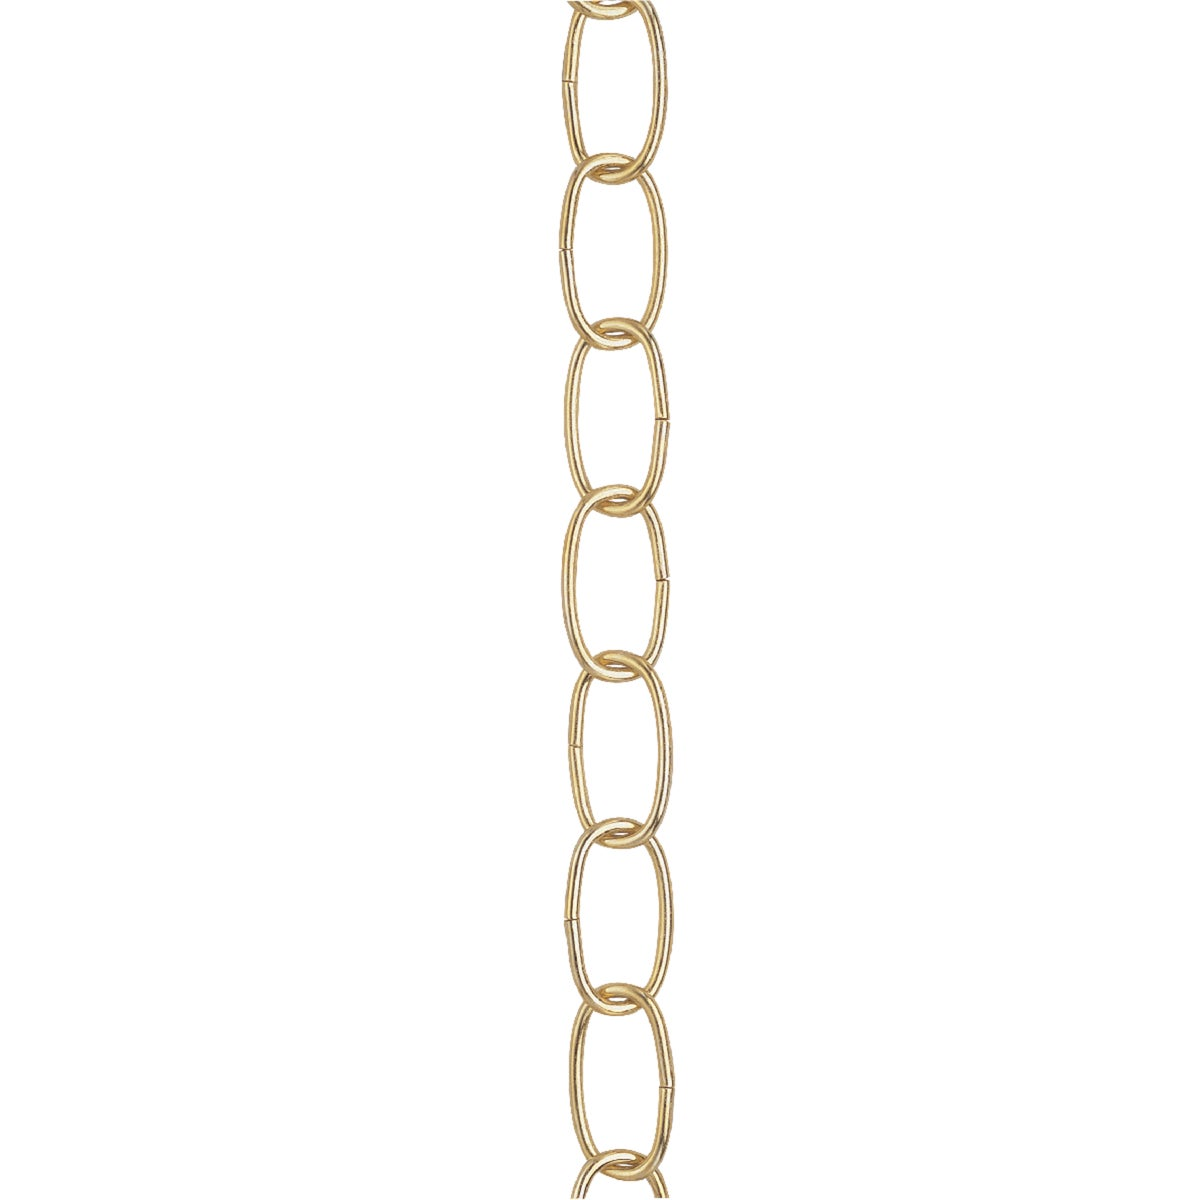 3' BRASS CHAIN - 70070 by Westinghouse Lightng